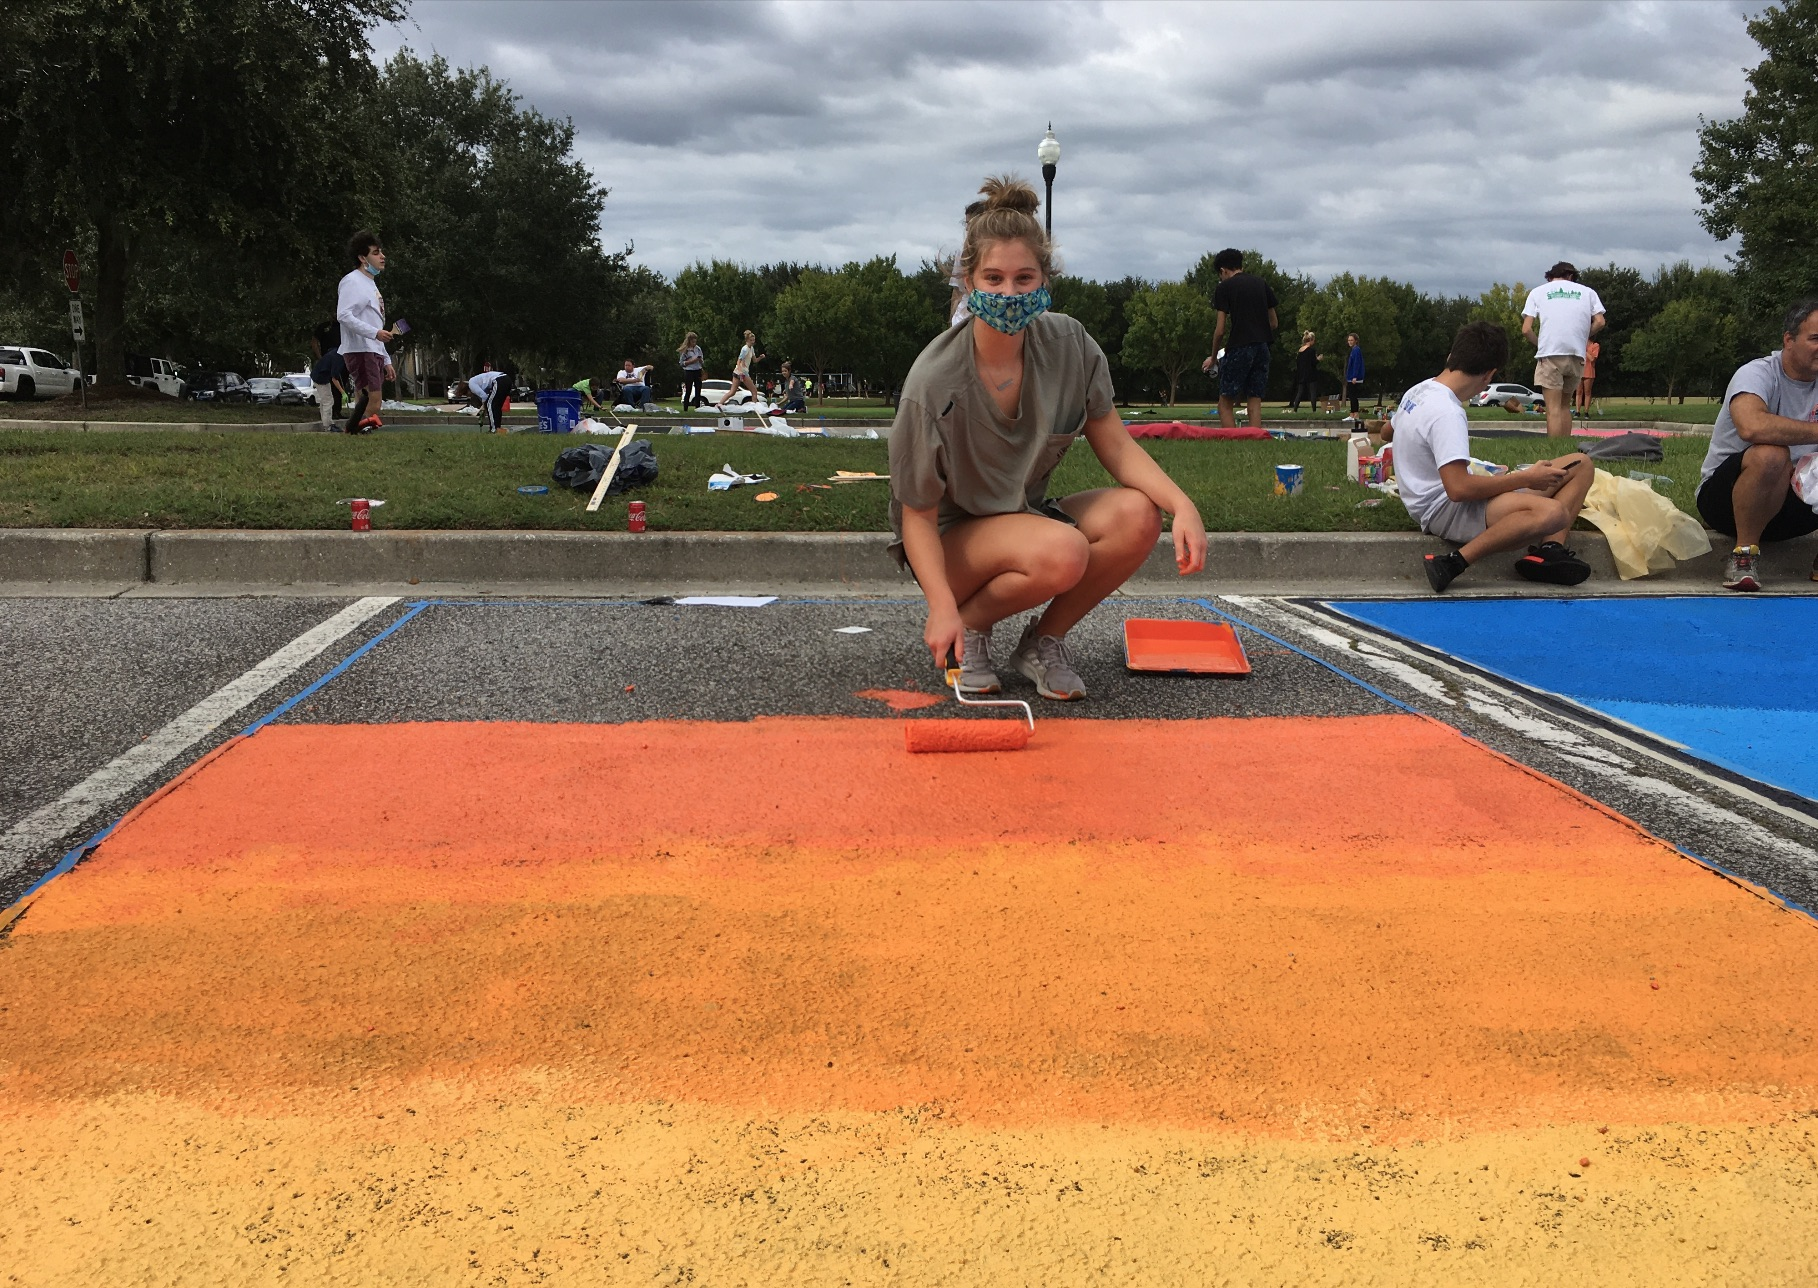 Catherine Grace Soper, 17, painted her parking space with multiple shades of orange, almost like a sunset. Here she displays her colorful creation.